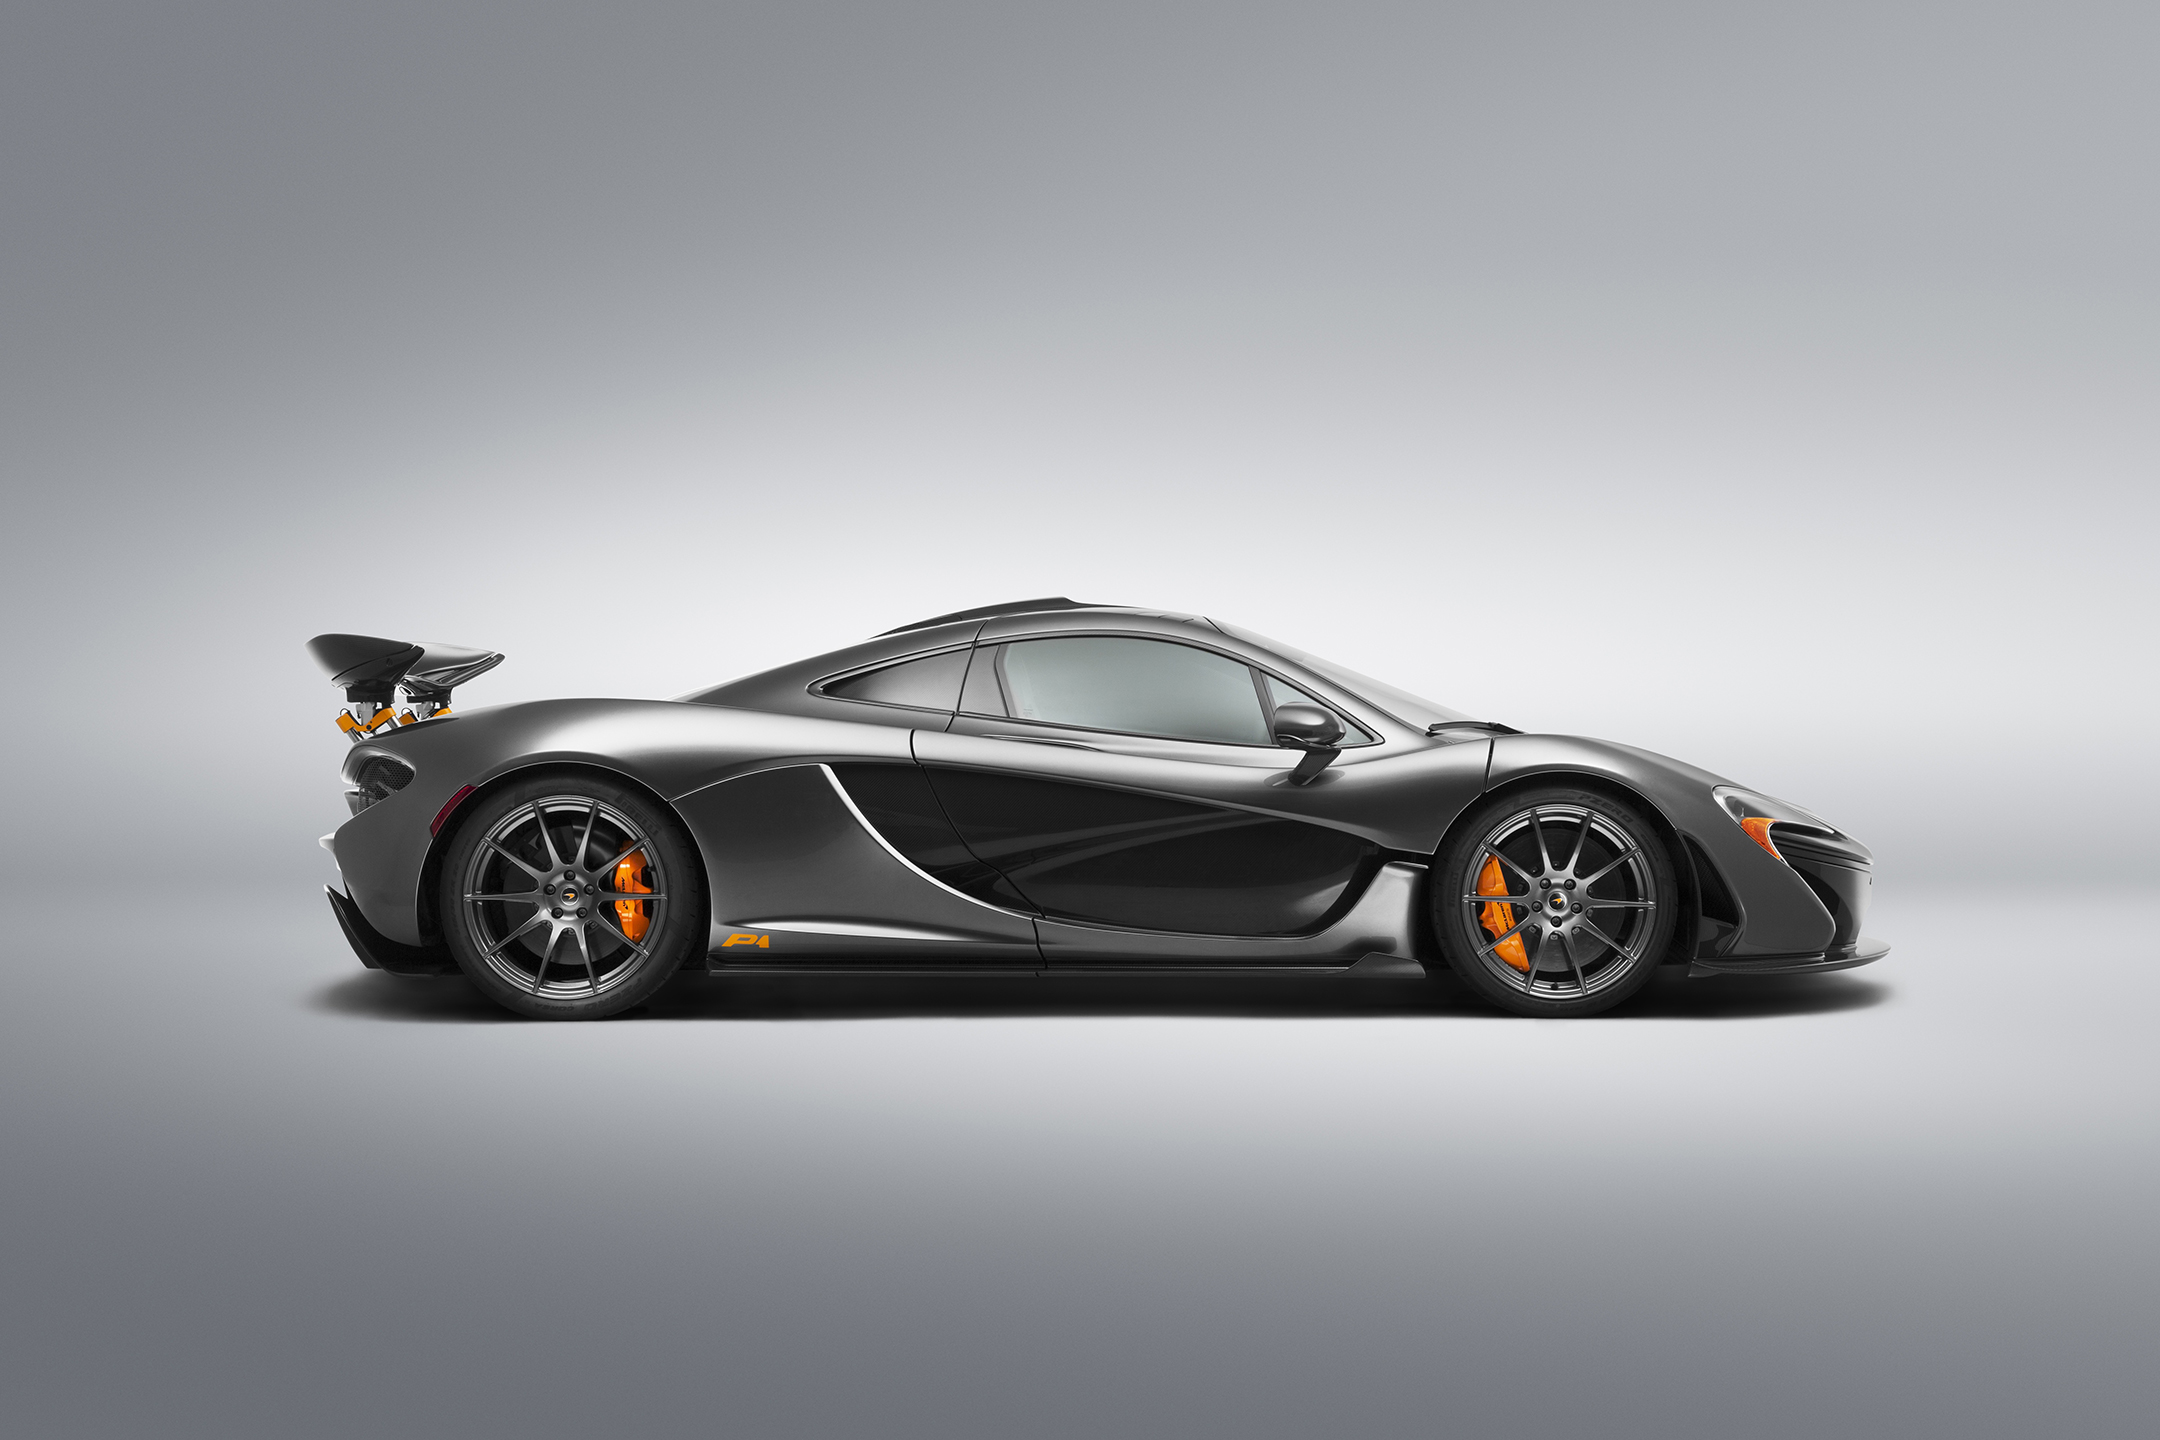 McLaren P1 MSO - 2015 - side-face / profil